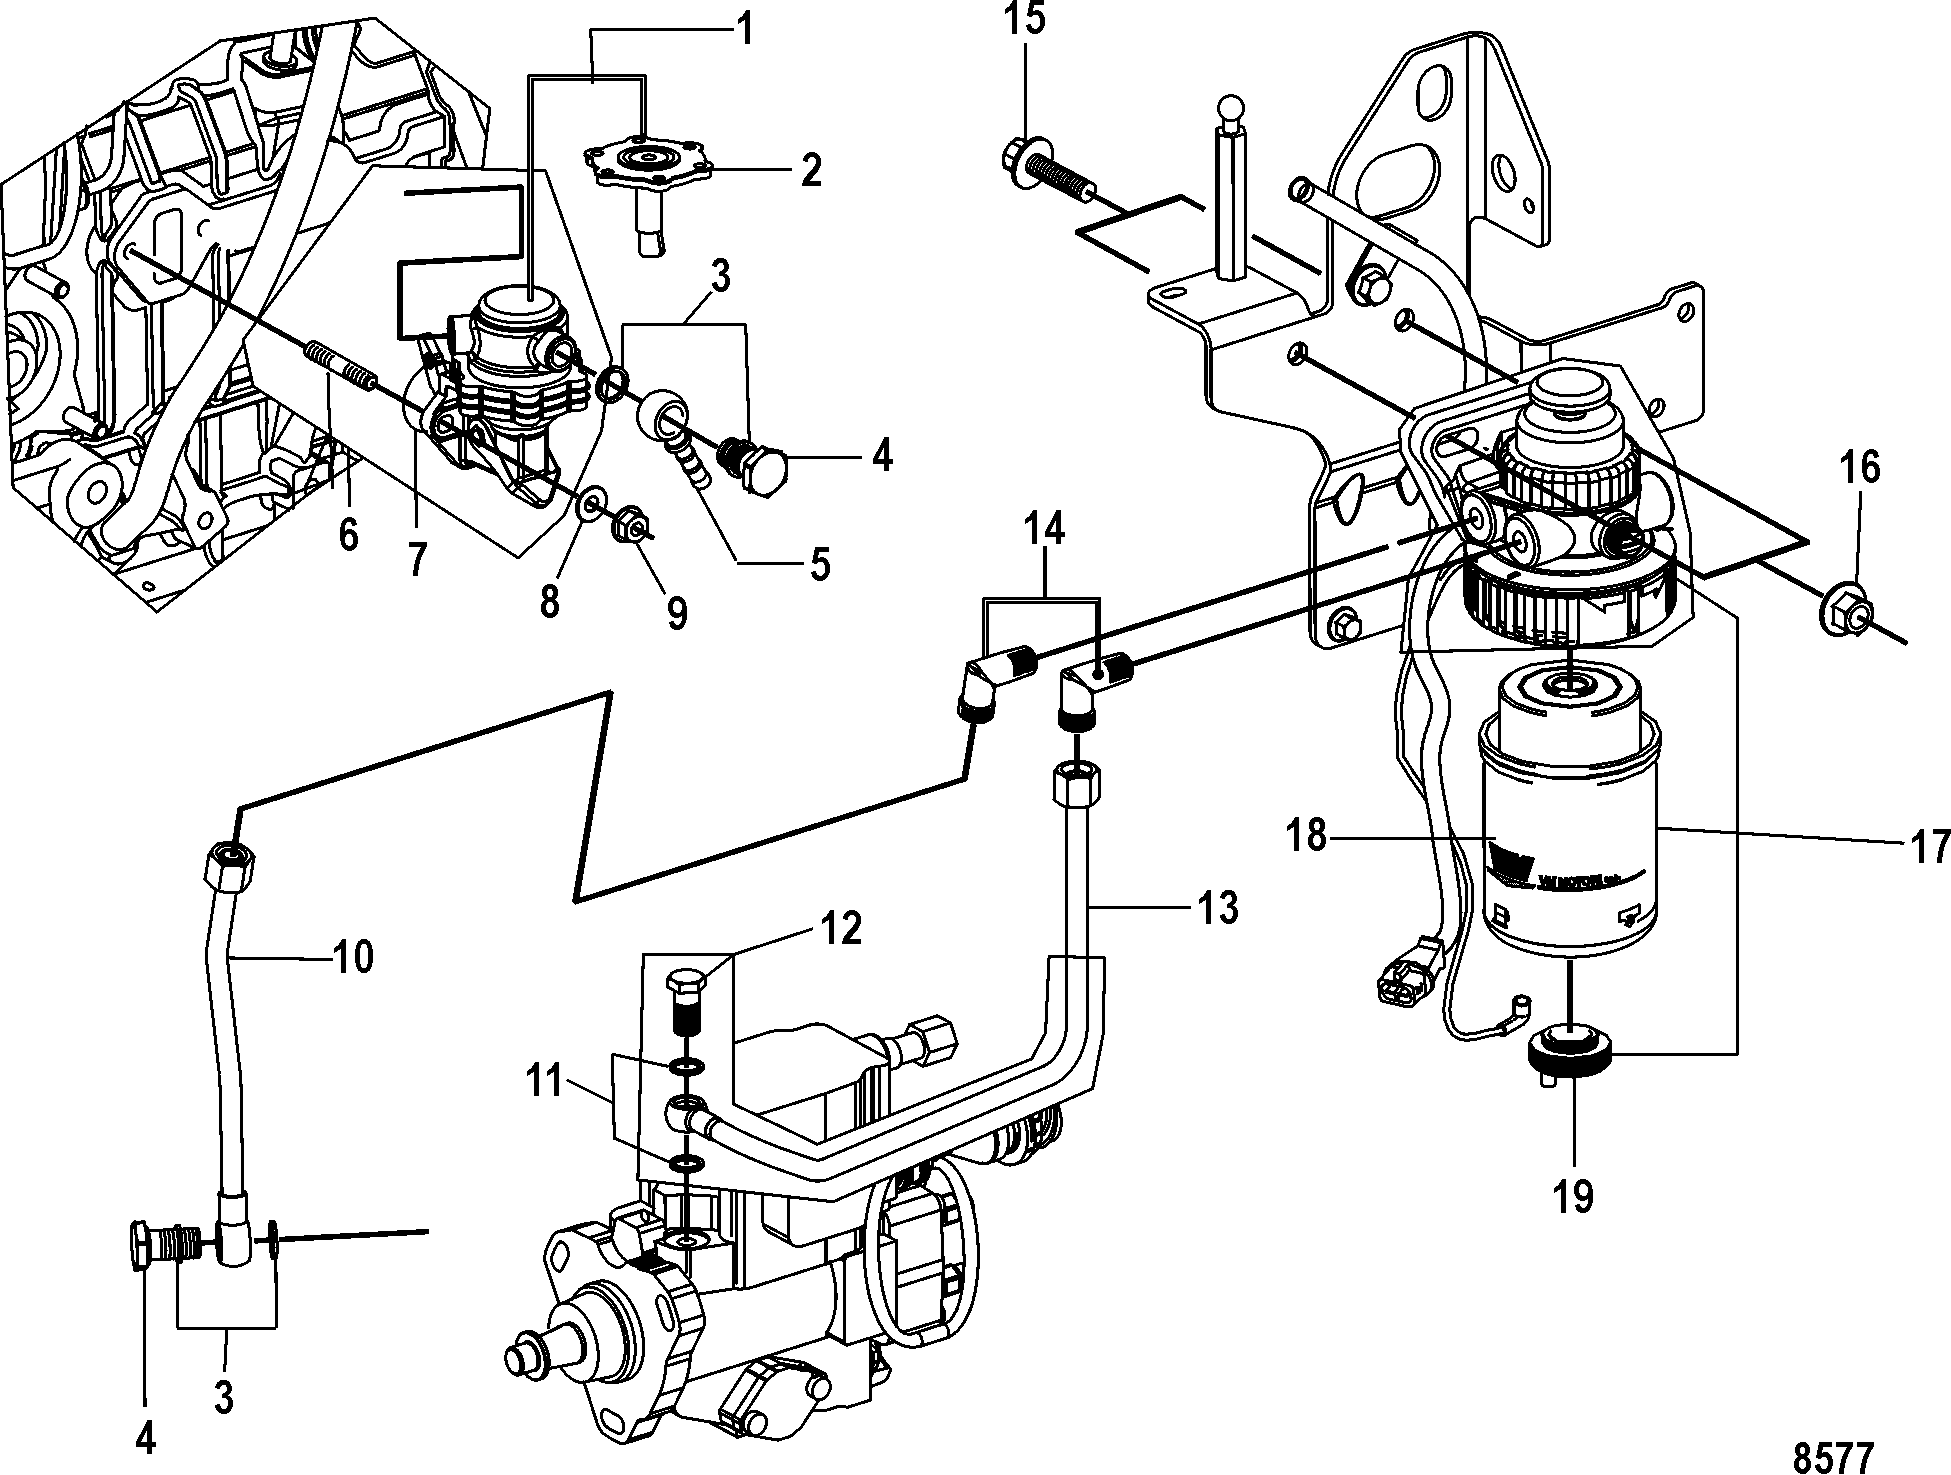 Mercruiser 5 0 Mpi Engine Diagram Free Wiring For You 470 Trim Control Wire Todays Rh 19 10 12 1813weddingbarn Com 50